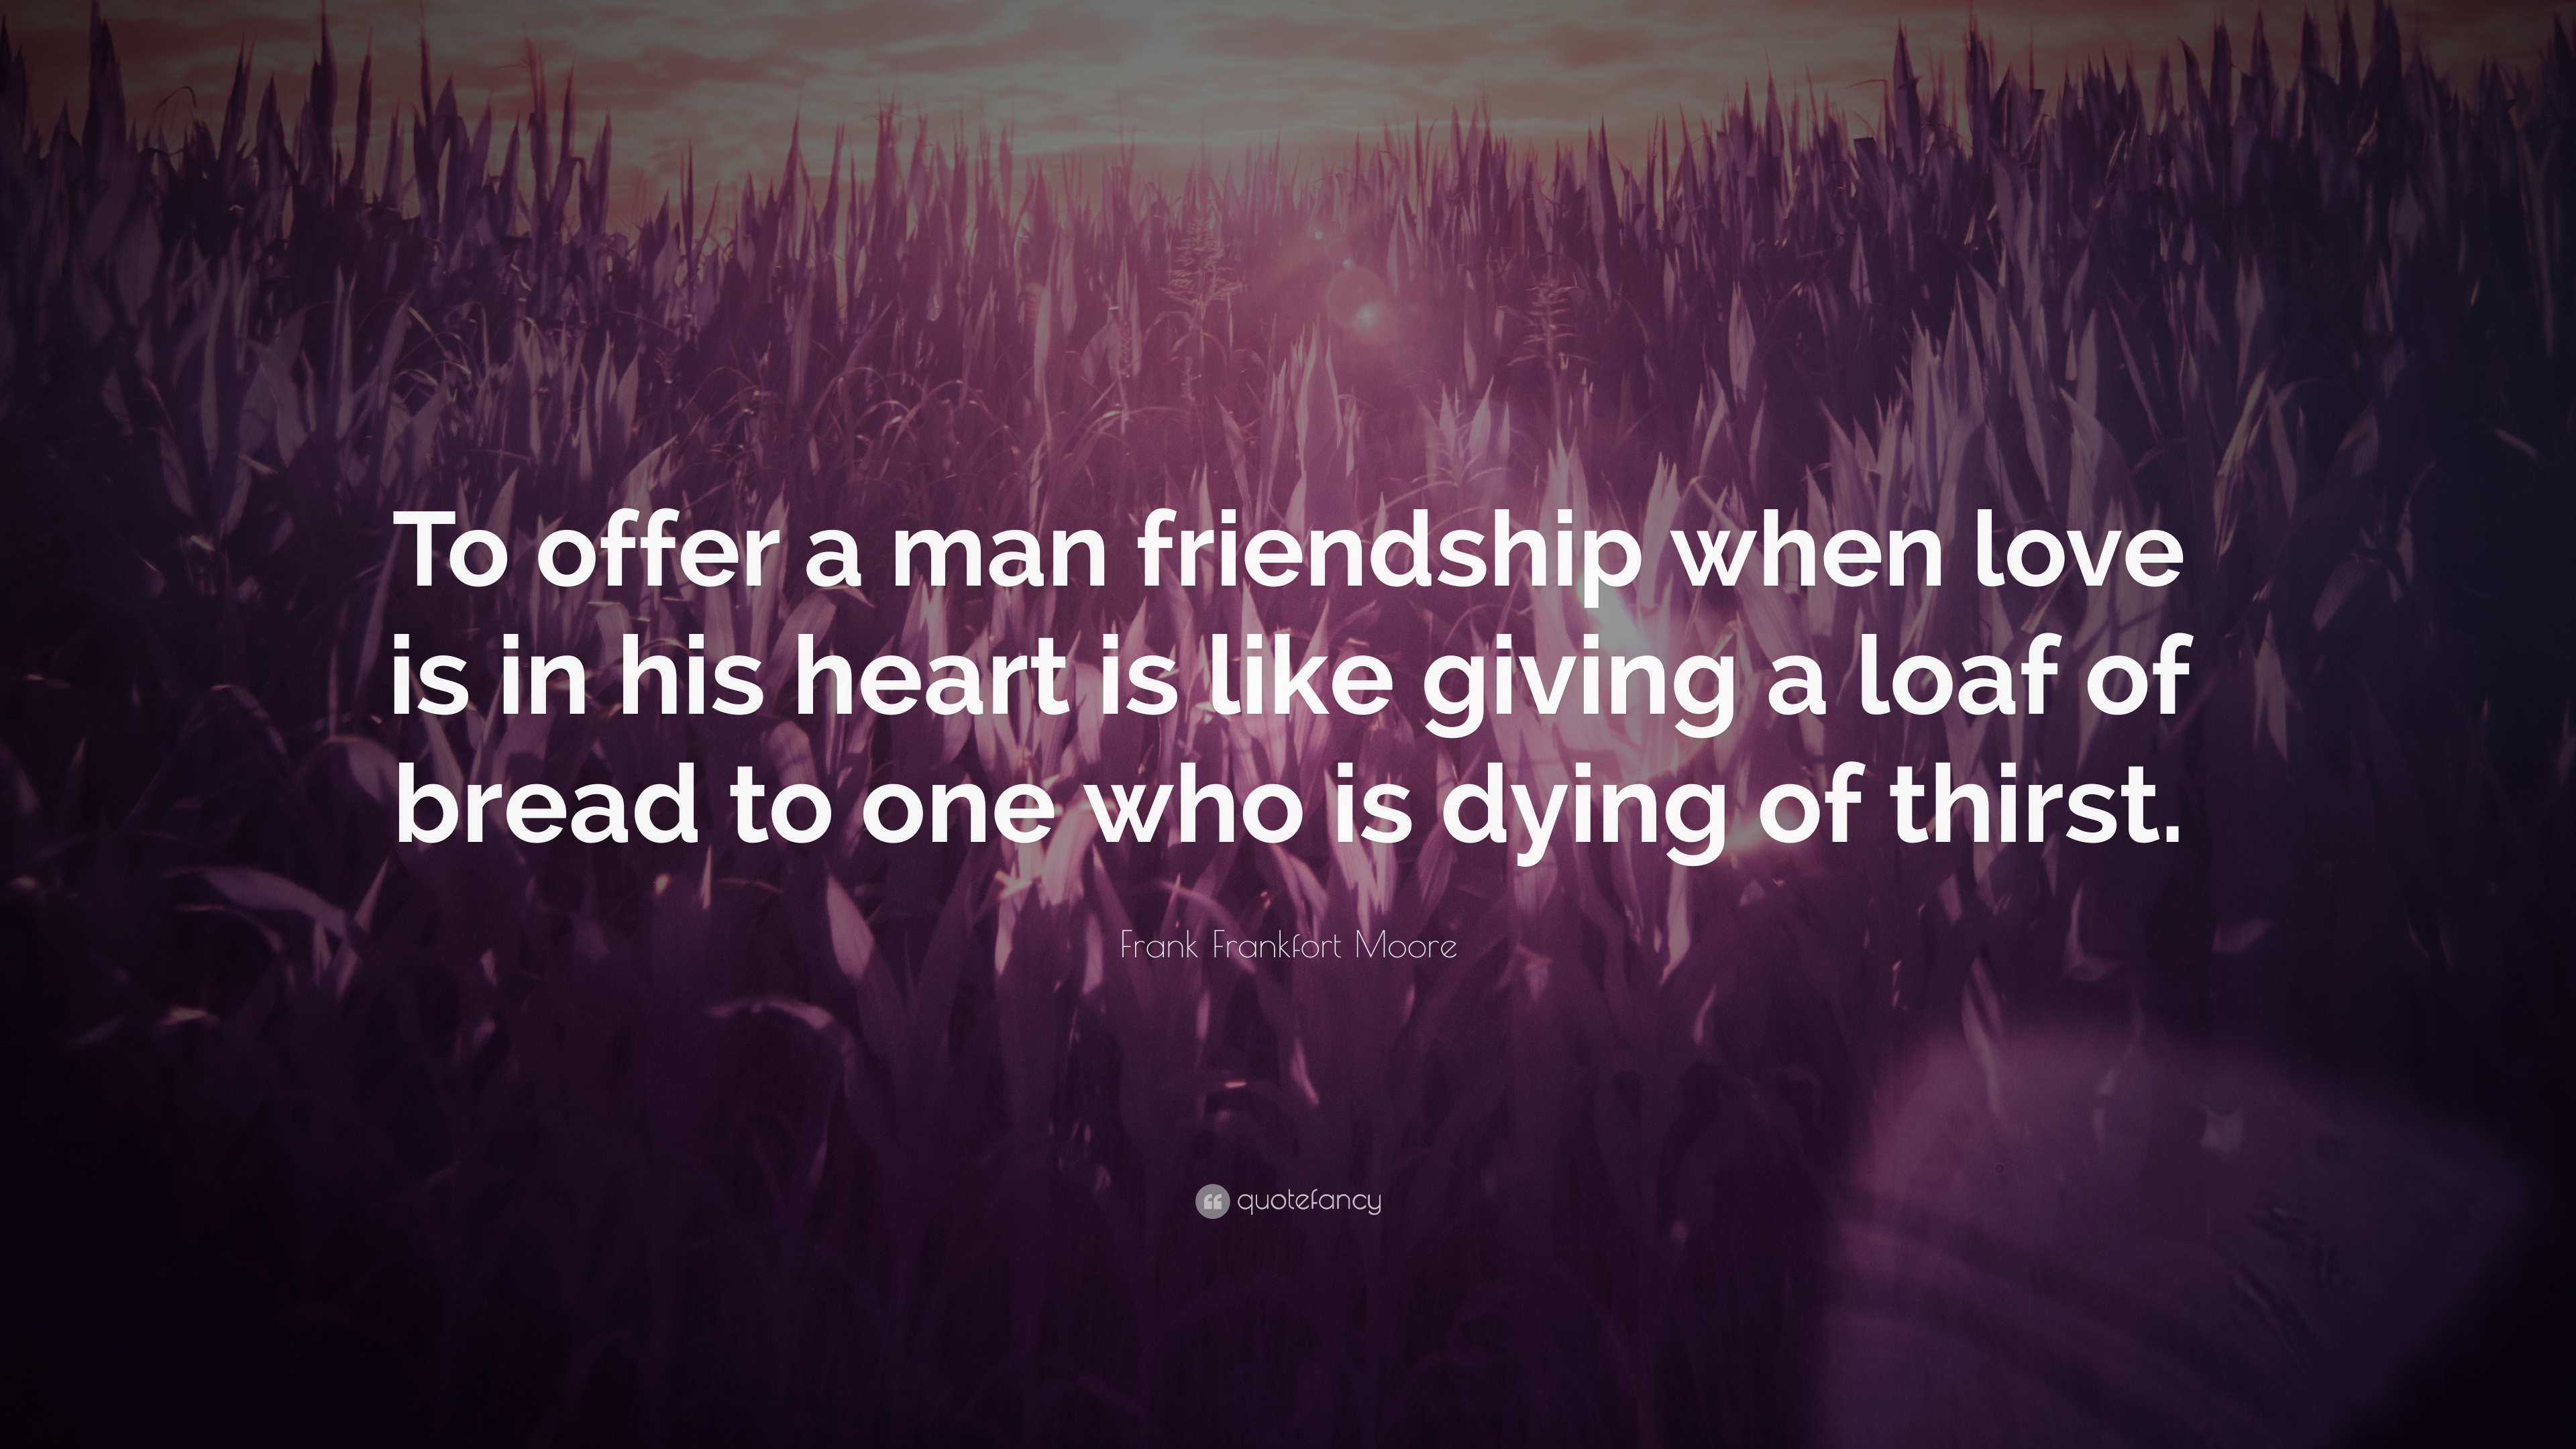 Quotes About A Broken Friendship Broken Heart Quotes 40 Wallpapers  Quotefancy